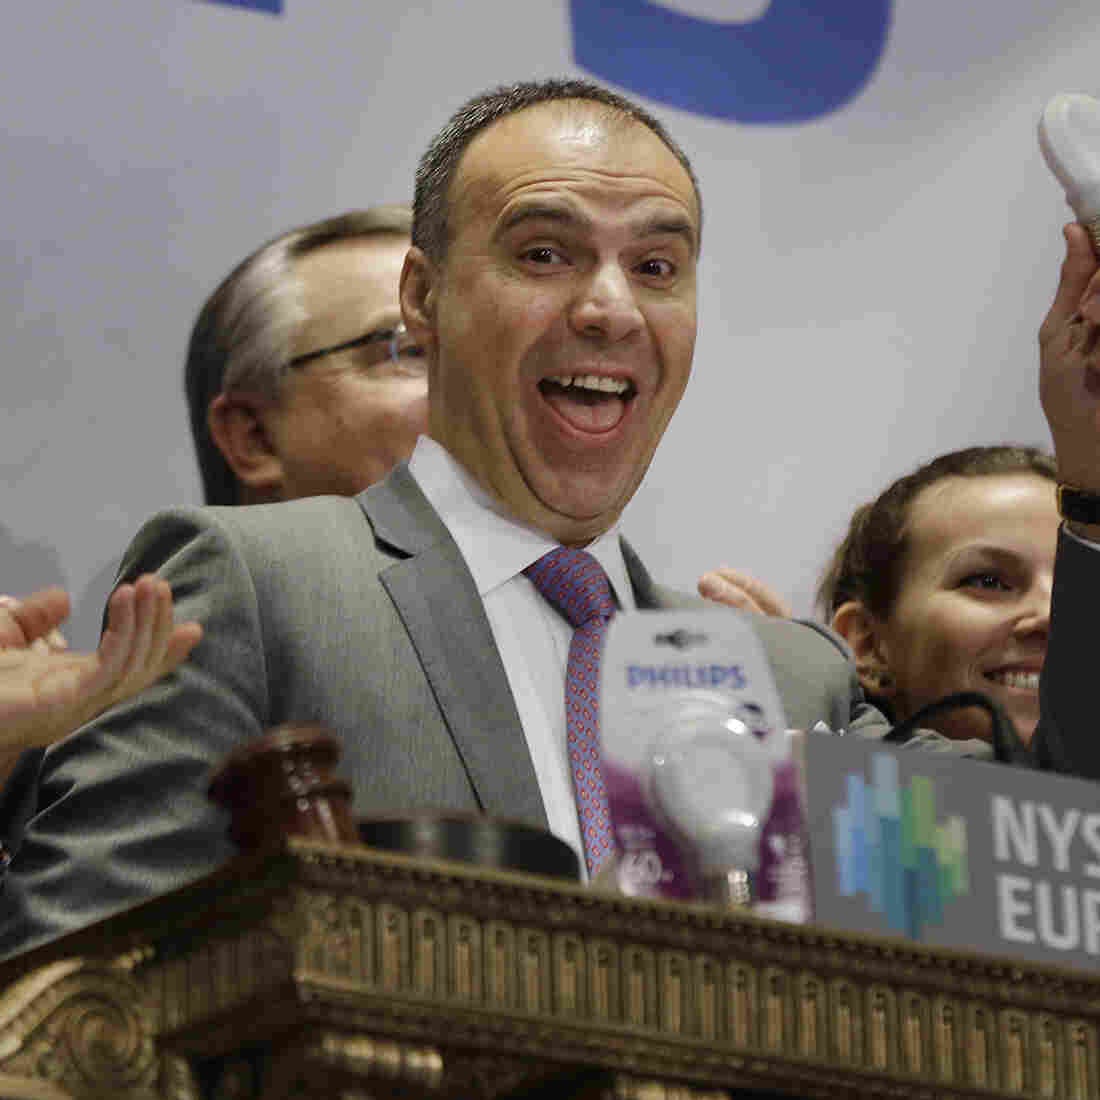 Philips Lighting North America CEO and President Bruno Biasiotta rings the opening bell at the New York Stock Exchange in New York, on Tuesday.